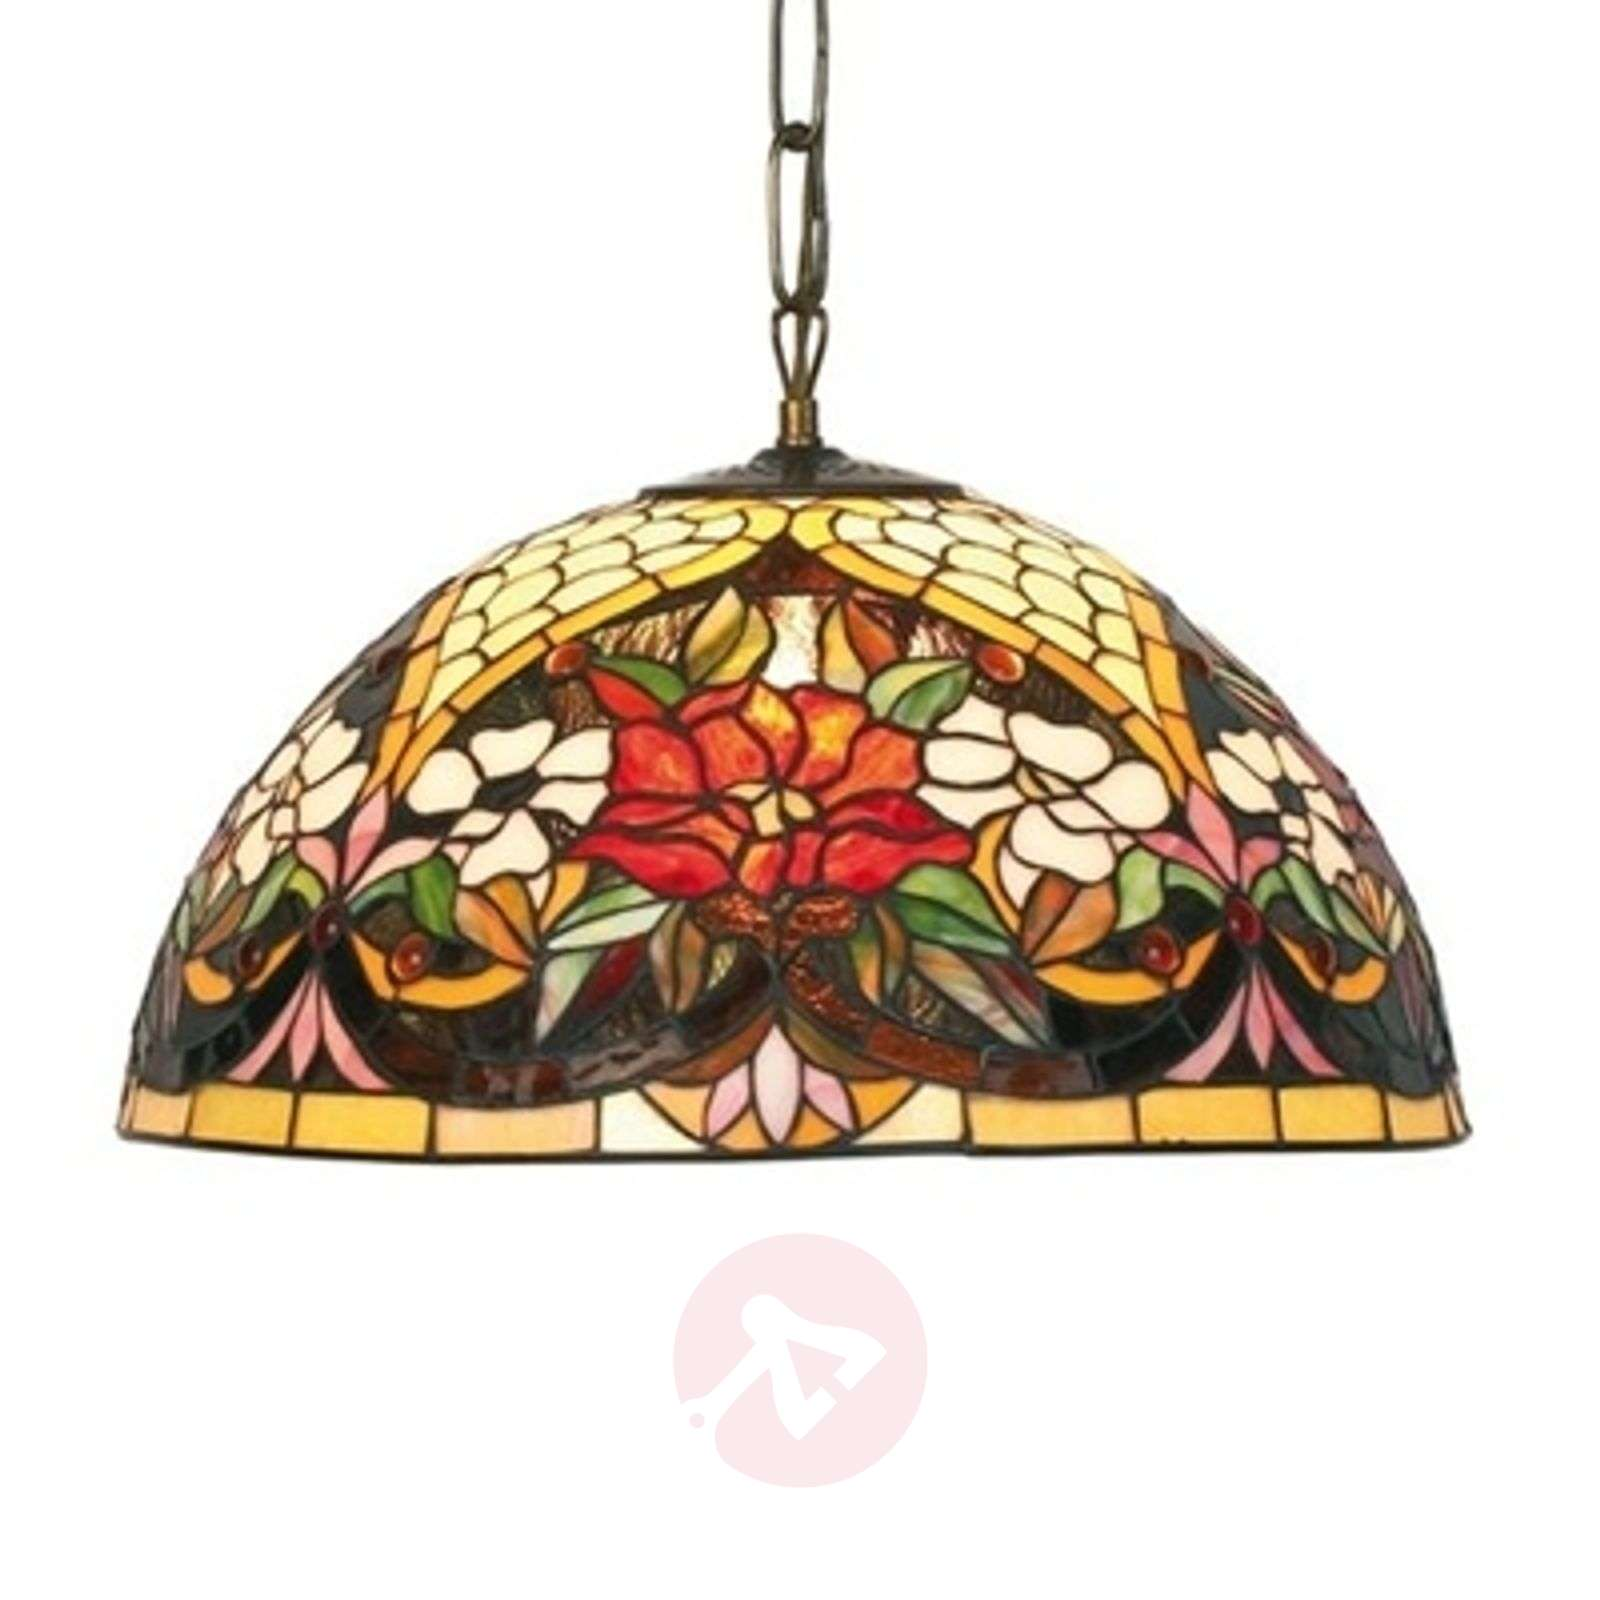 Floral hanging light ANTINA-1032151X-01